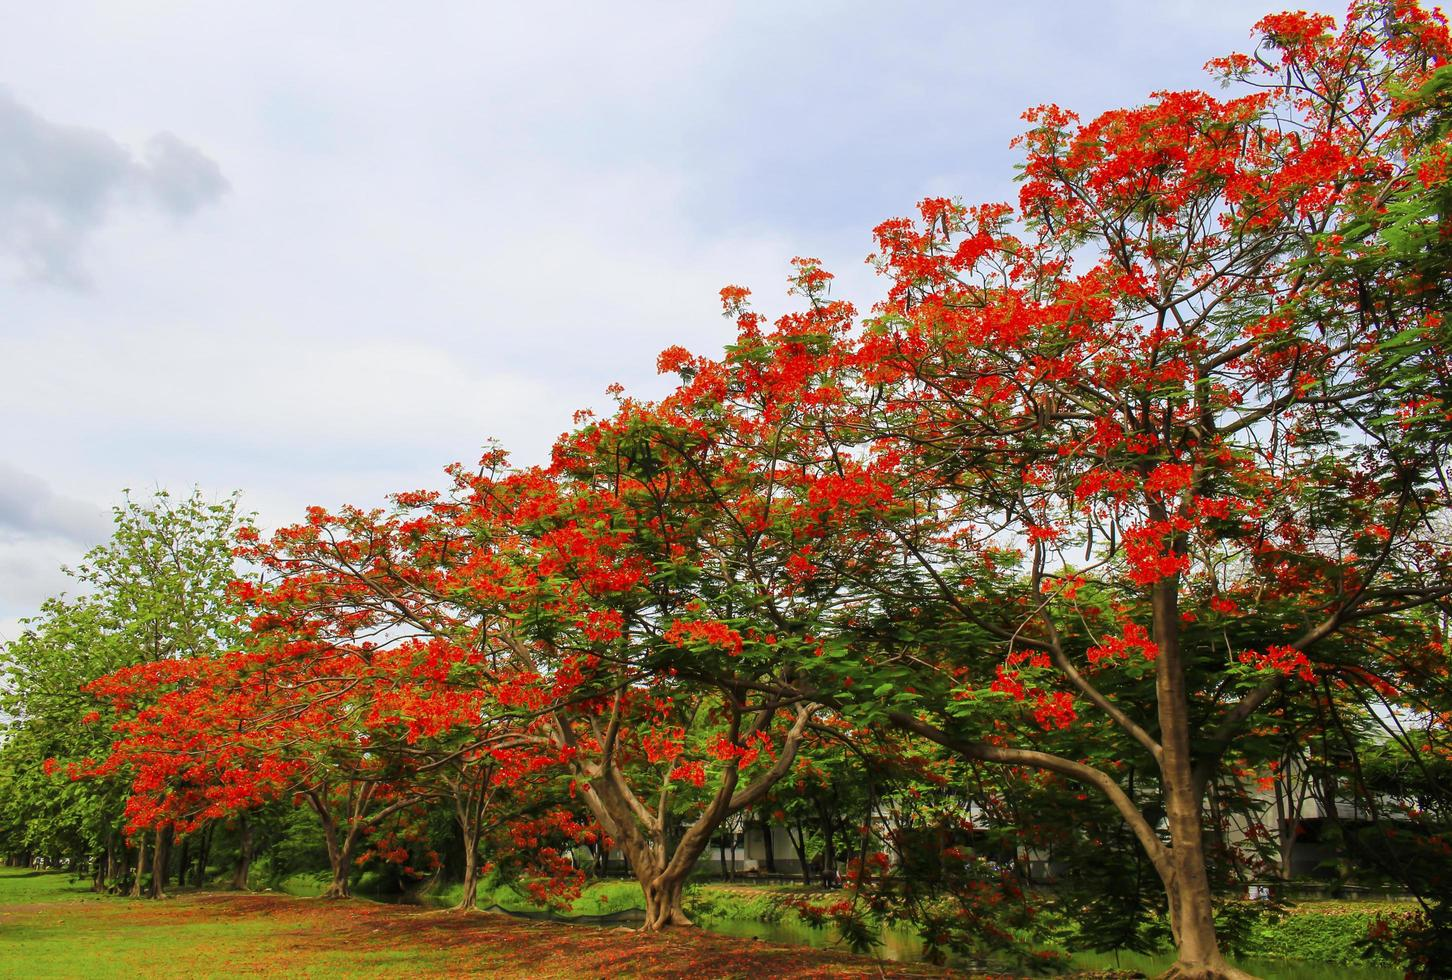 Red flowers on trees photo